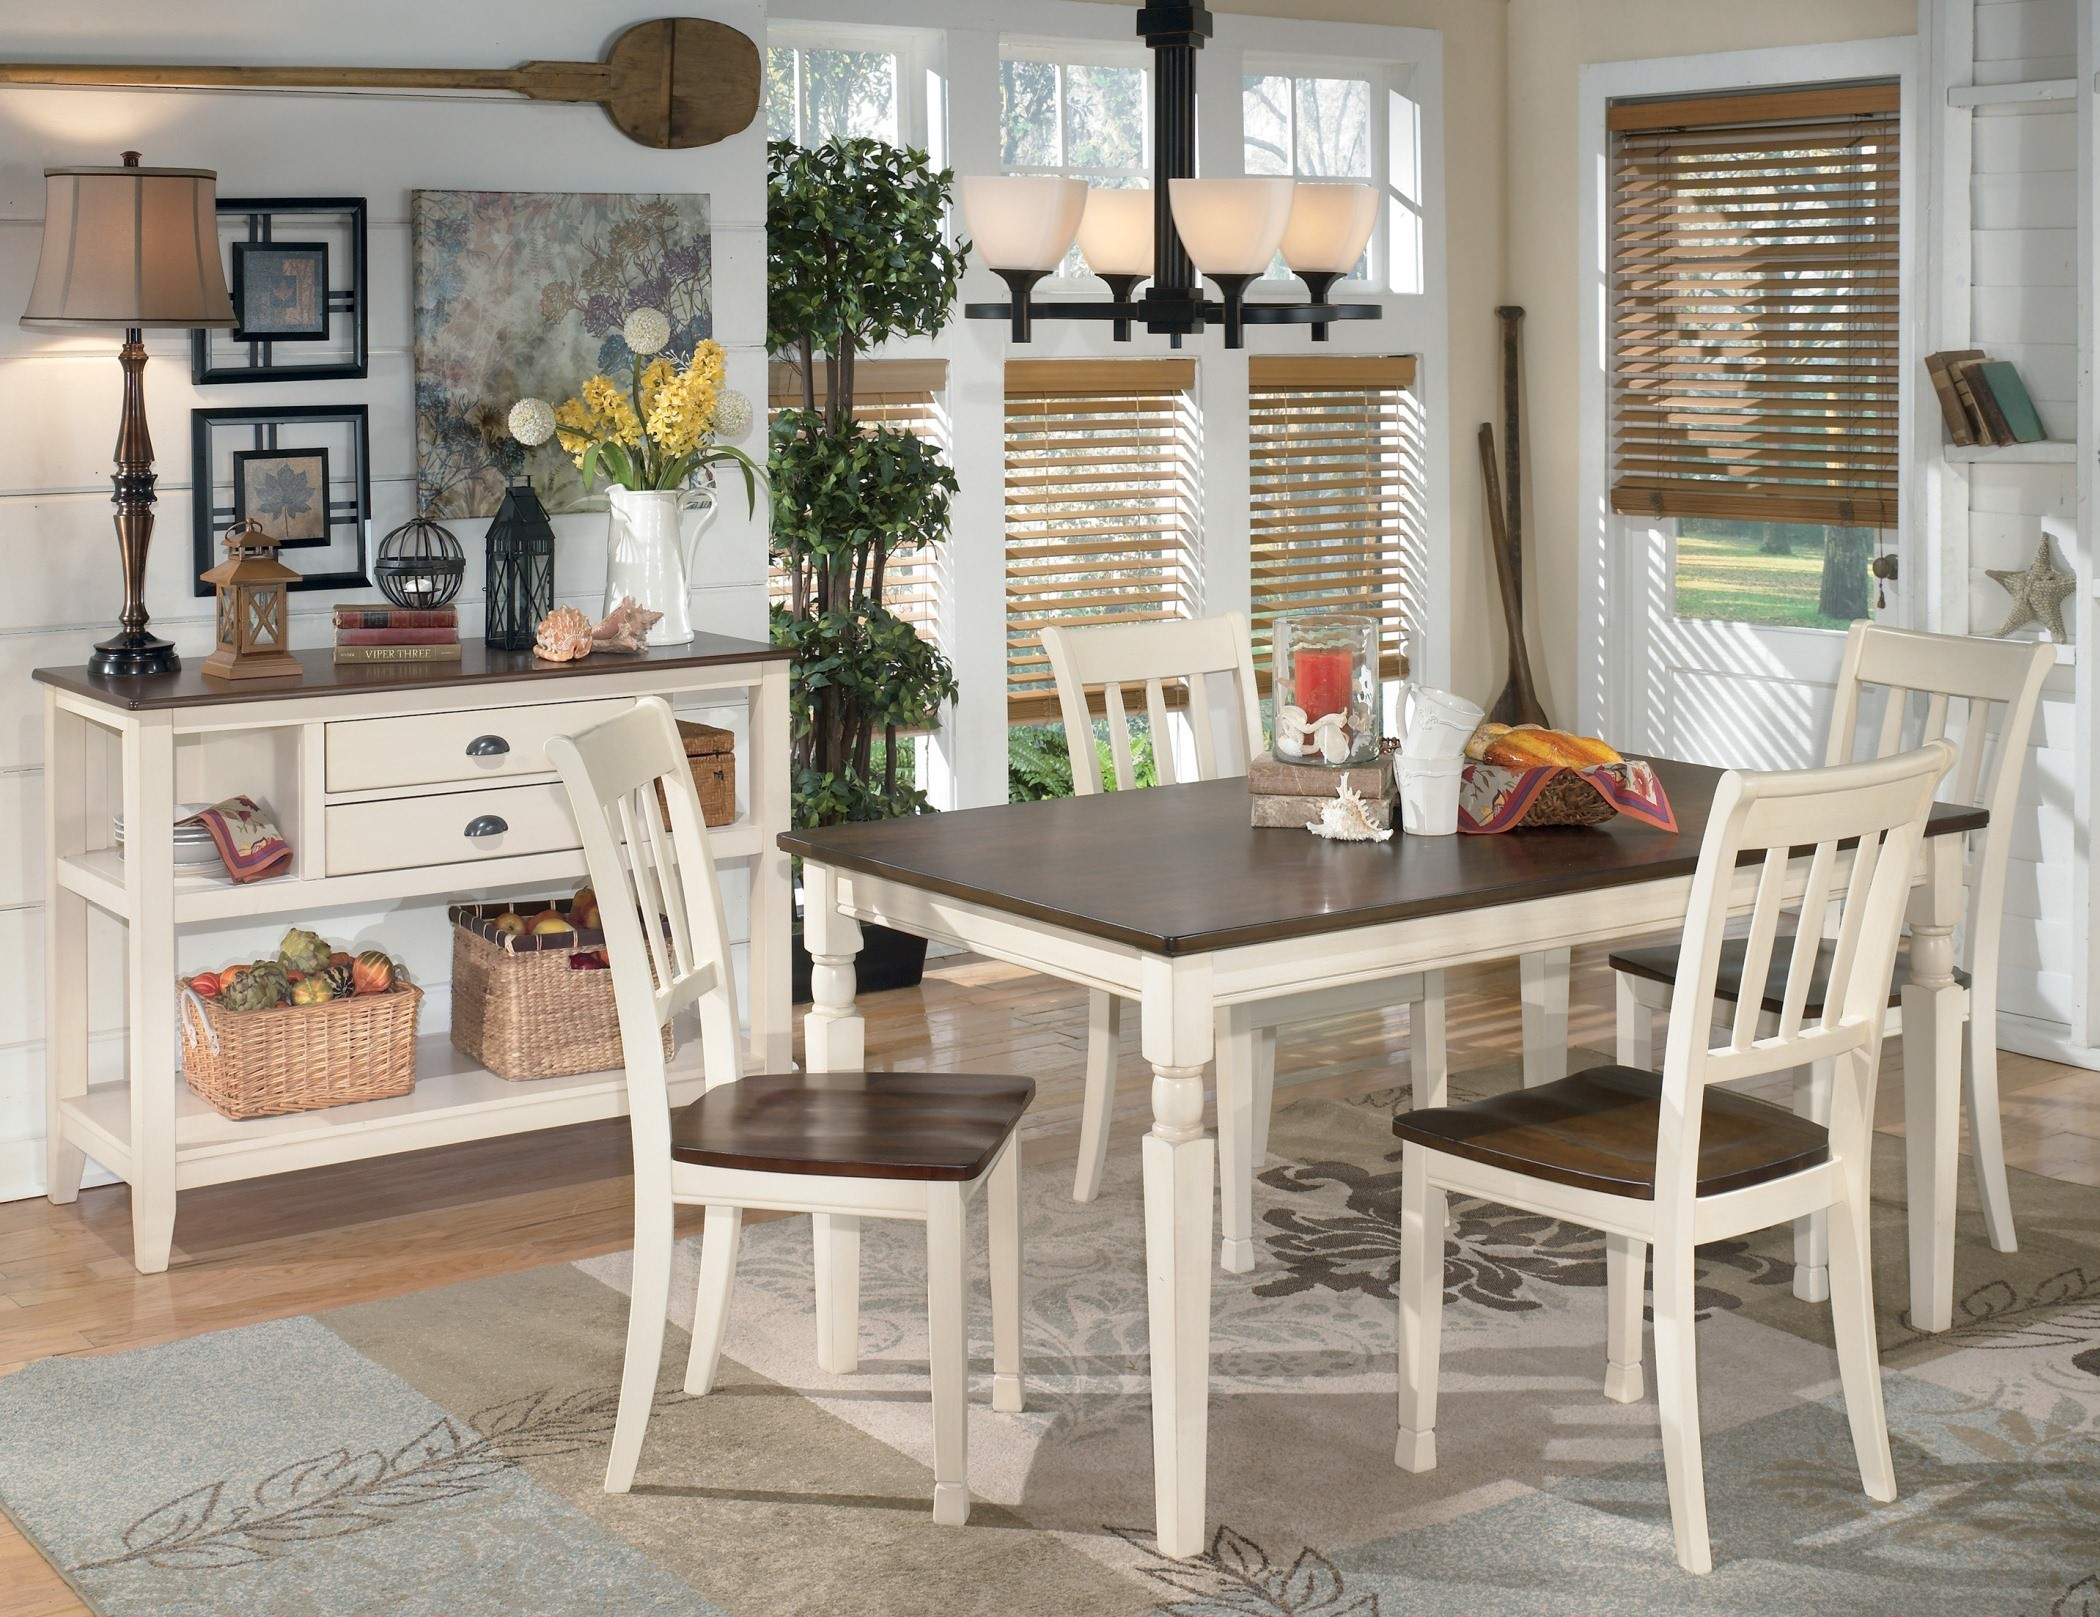 ashley dining room sets whitesburg rectangular dining room set from ashley d583 25 coleman furniture 1539